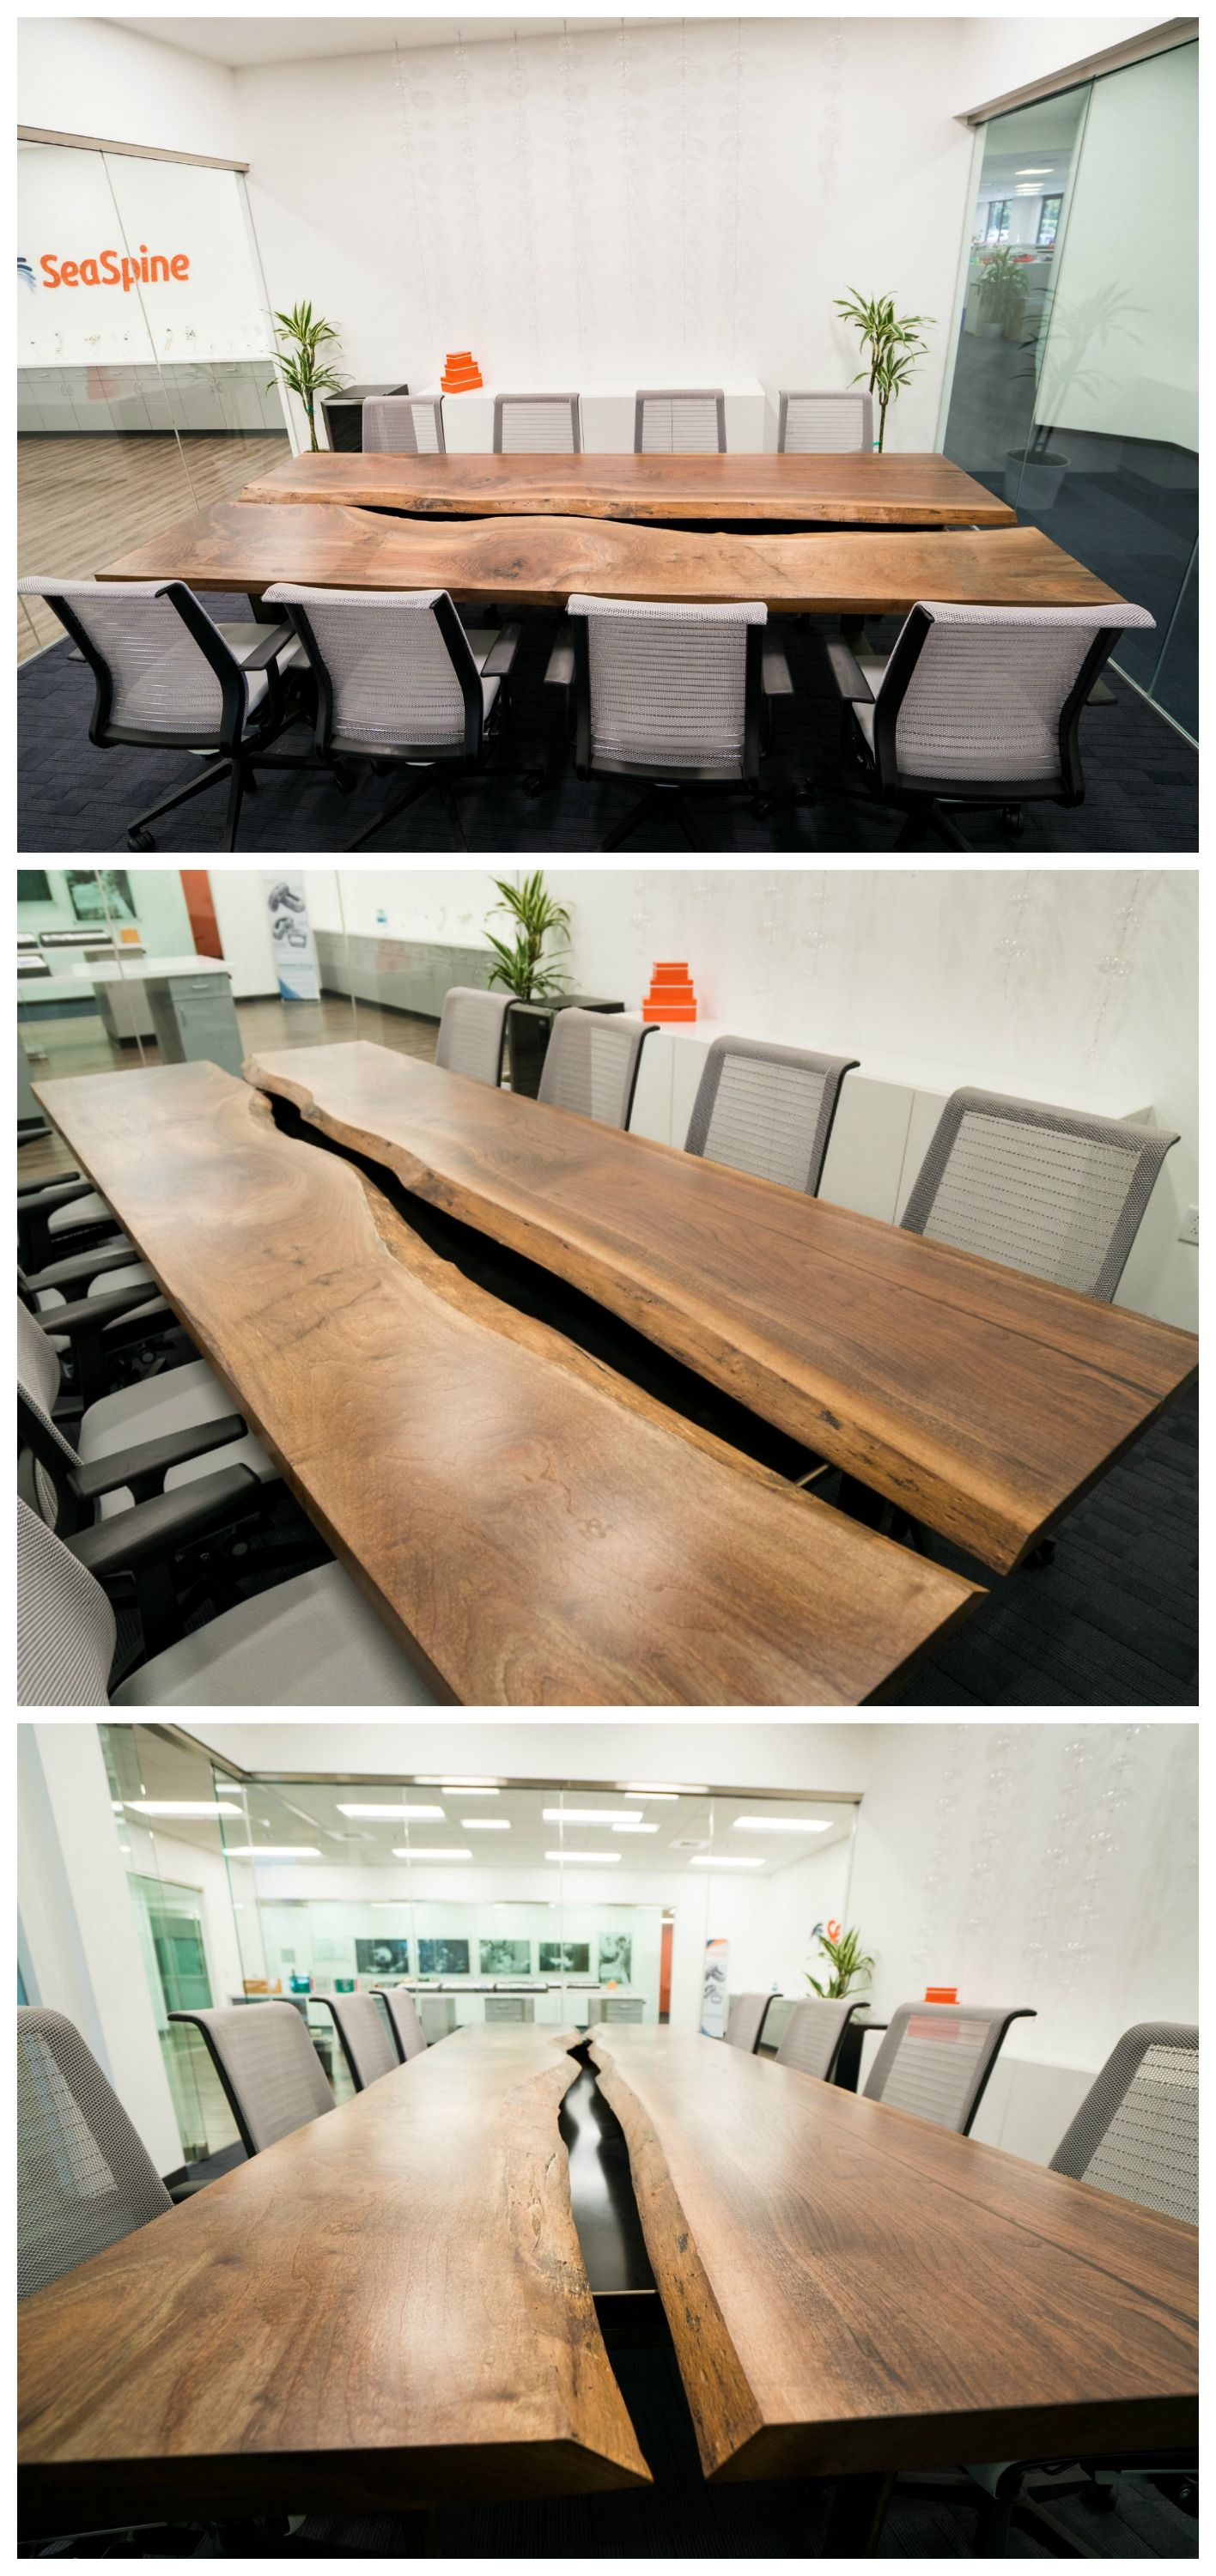 conference room table ideas. Black Walnut Conference Room Table For SeaSpine In Carlsbad, CA. Live Edge Running Down The Middle. Ideas O